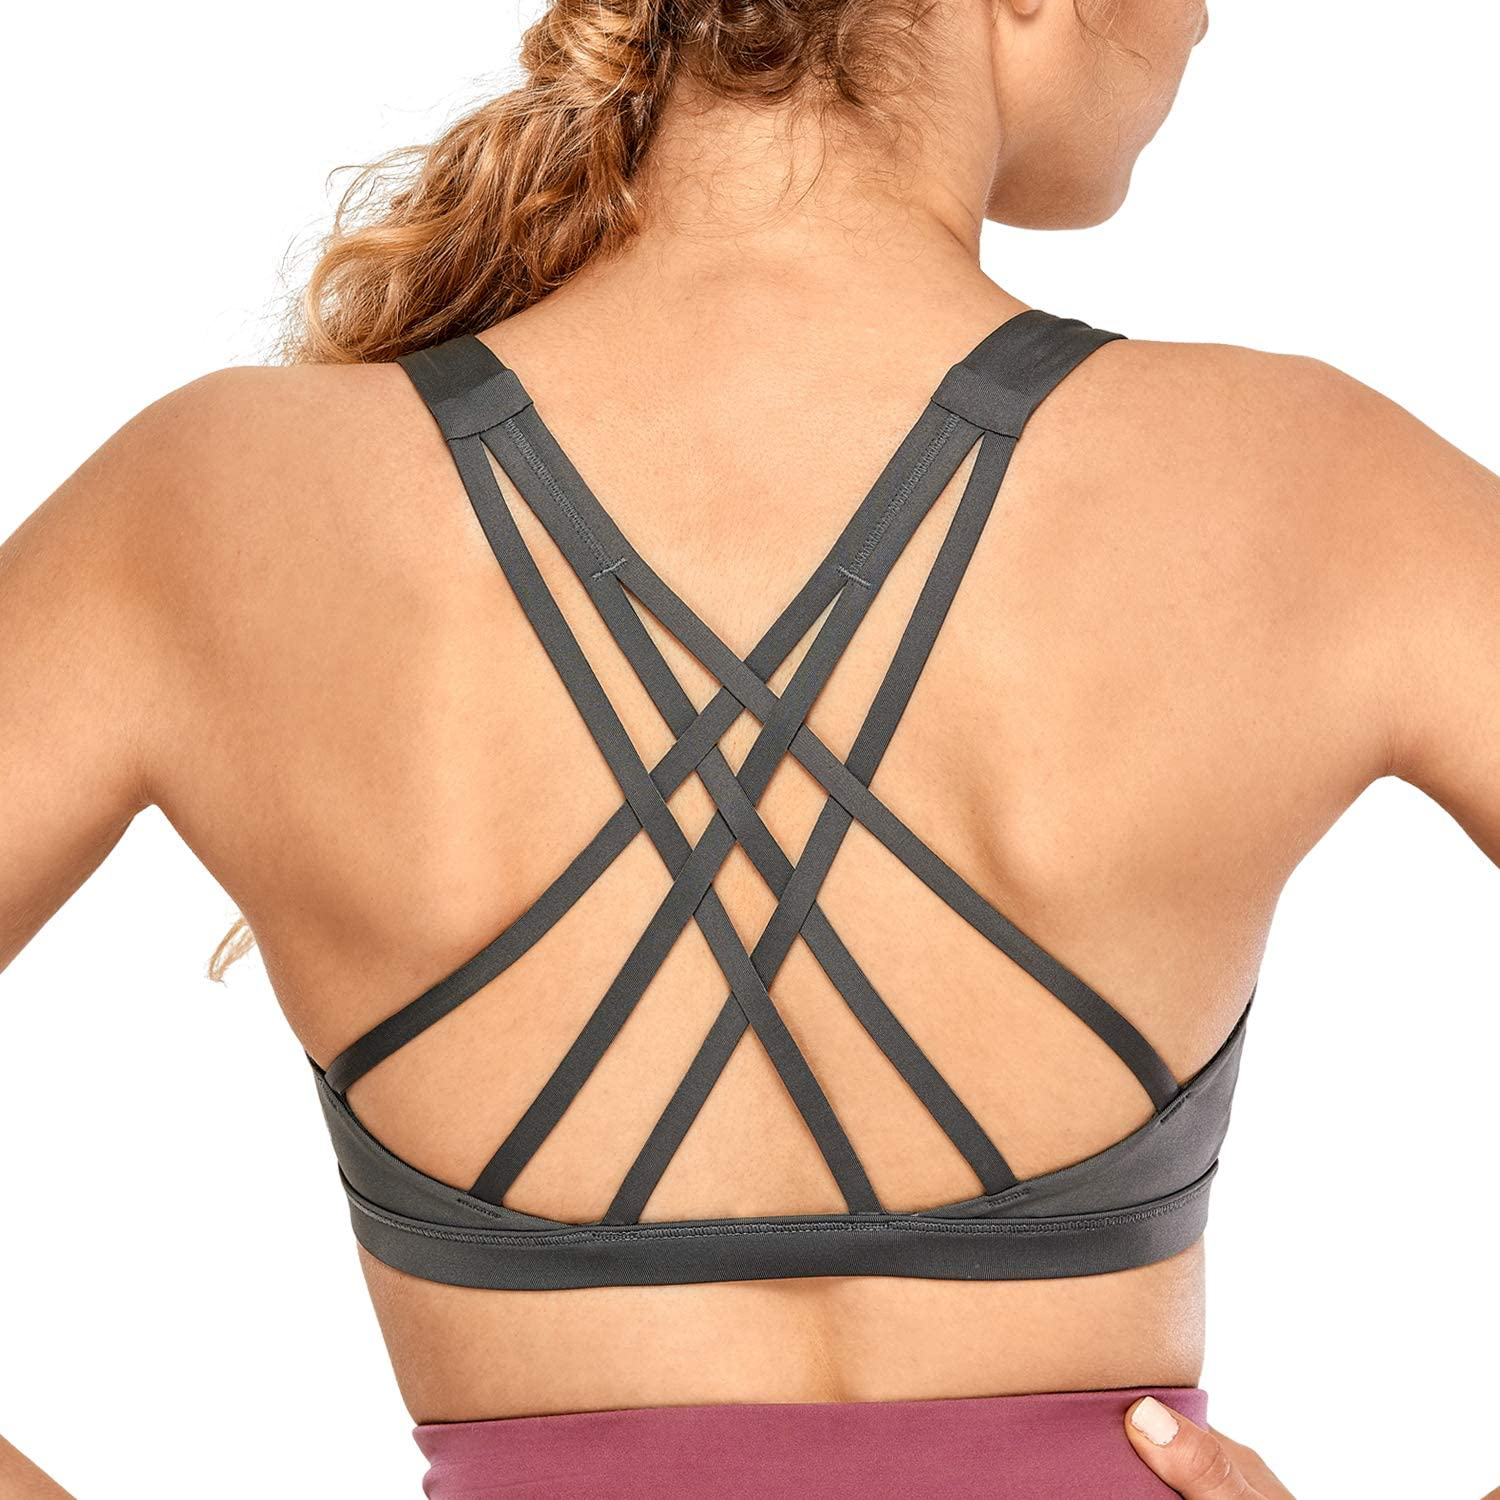 CRZ YOGA Women's Strappy Sports Bra Full Coverage Padded Supportive Cute Workout Yoga Bra Tops Sexy Back